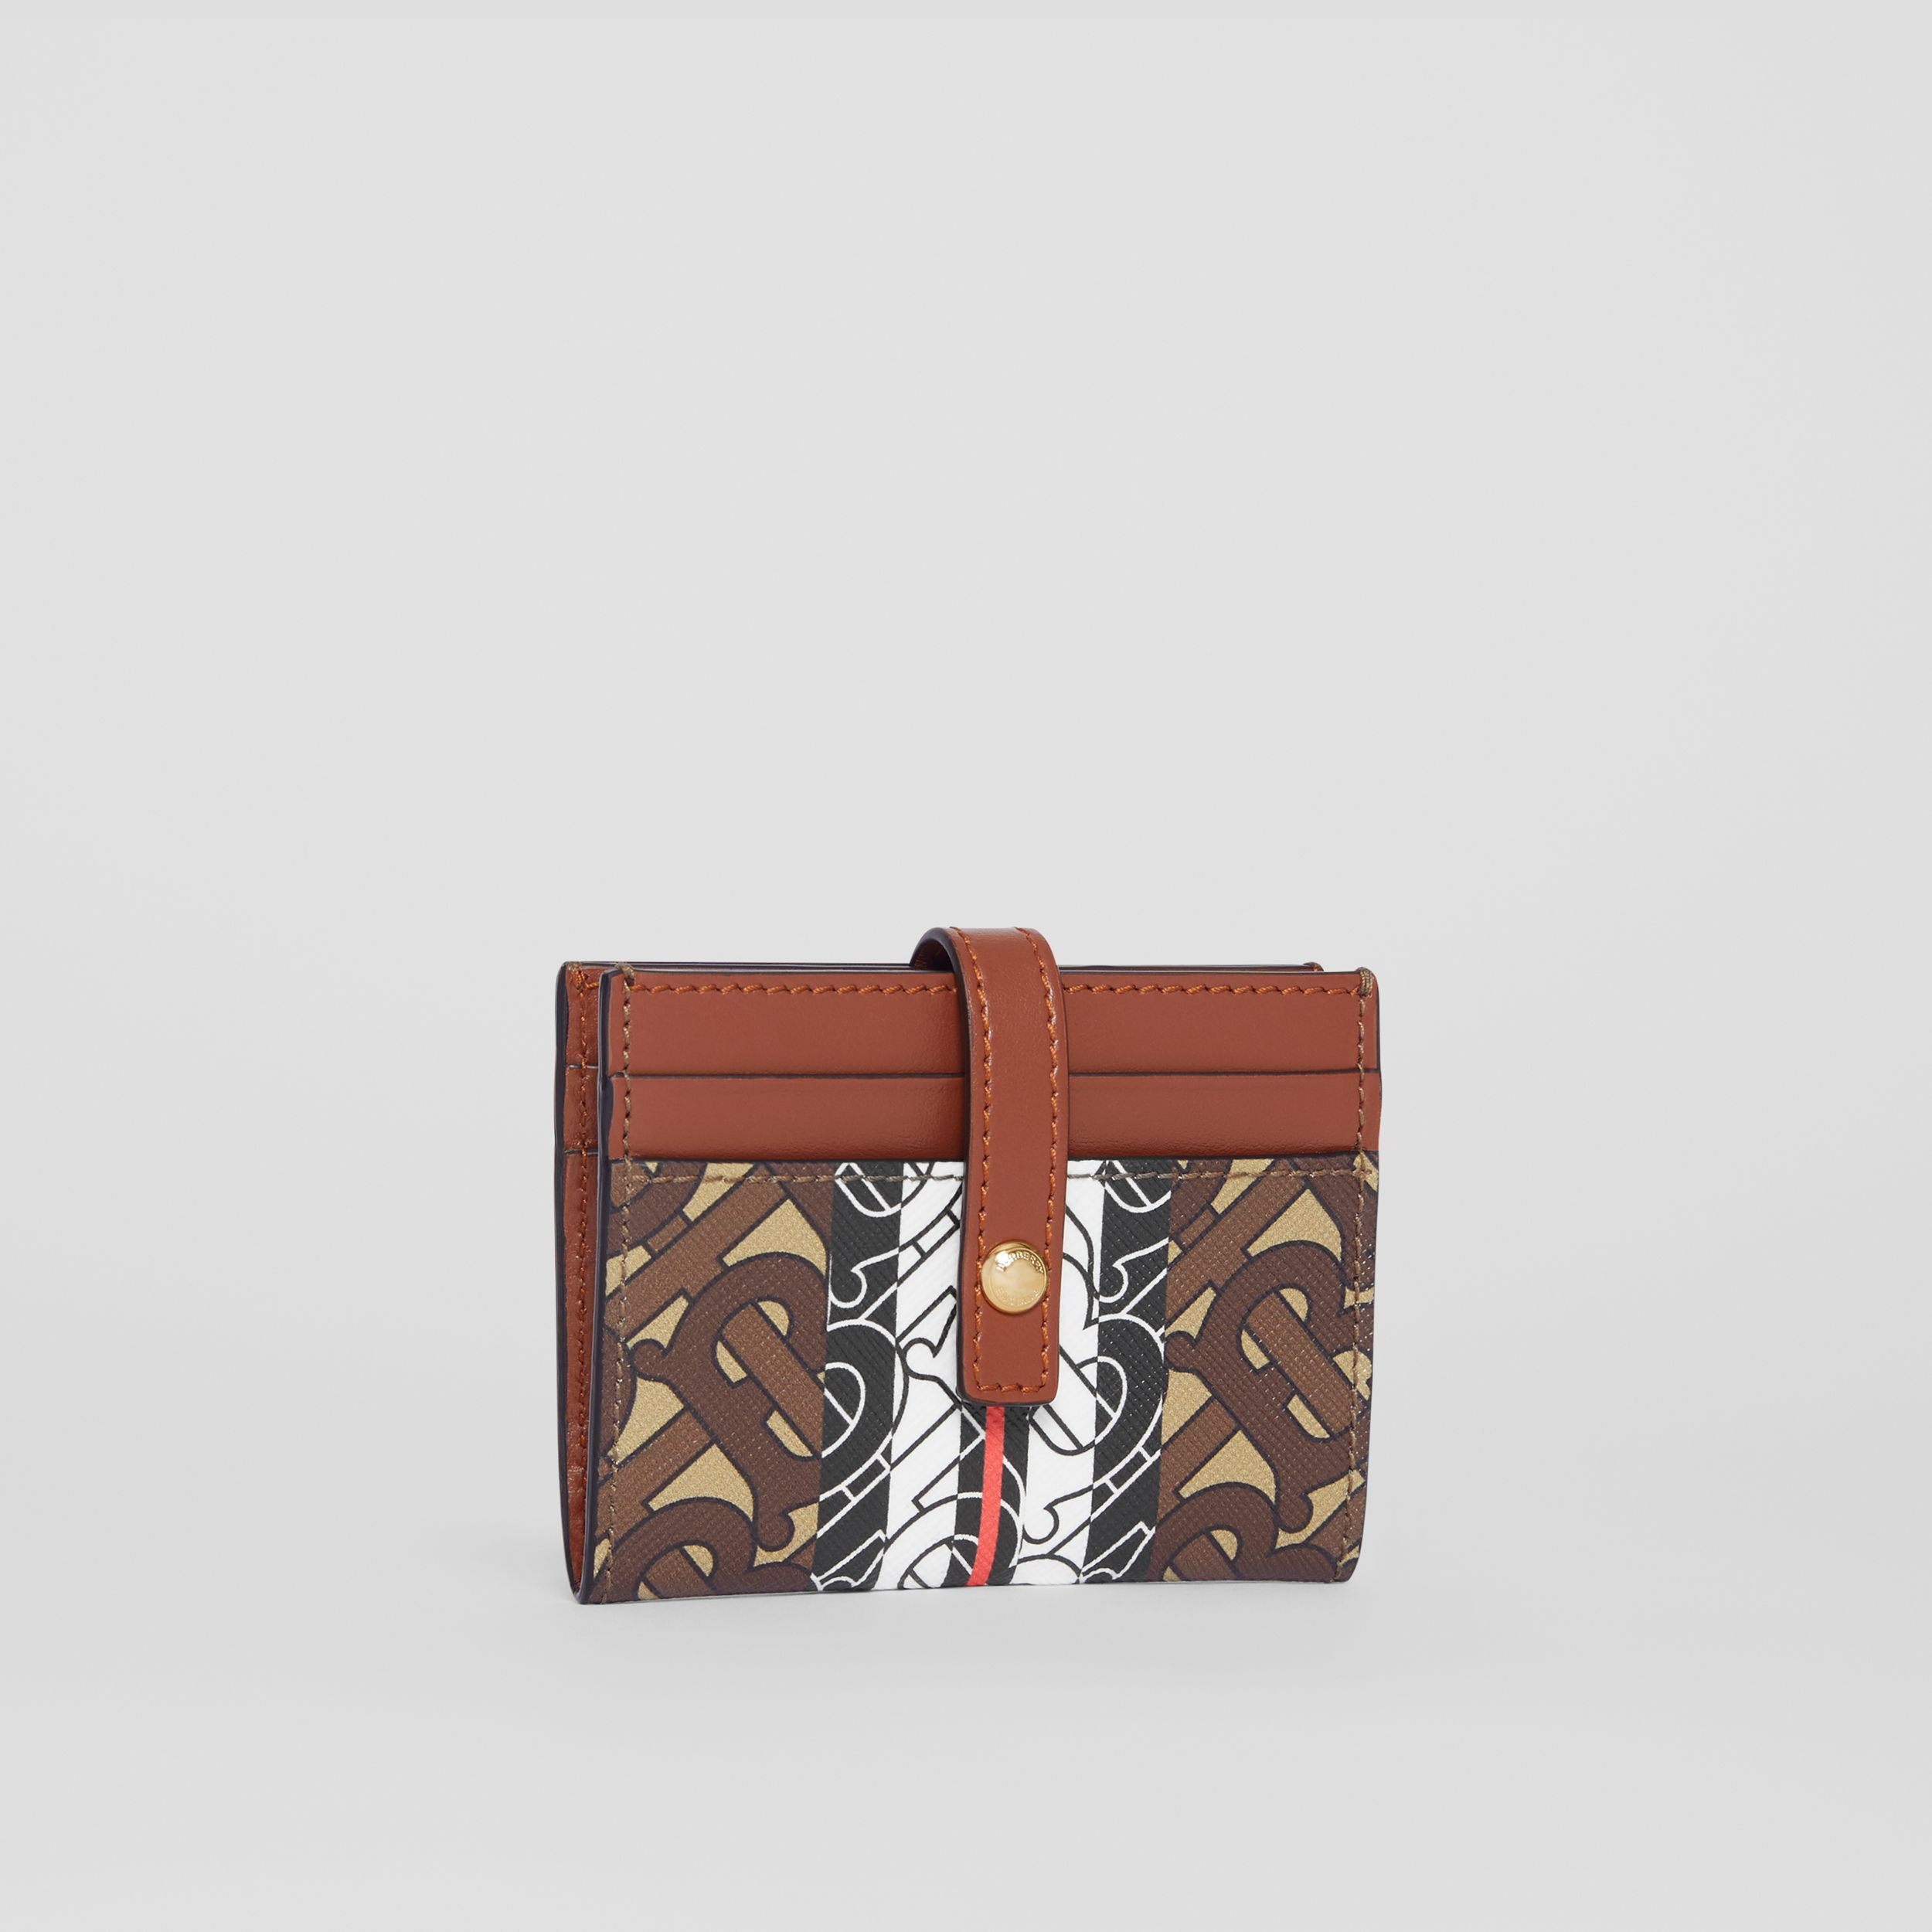 Monogram Stripe E-canvas Folding Card Case in Bridle Brown - Women | Burberry - 4